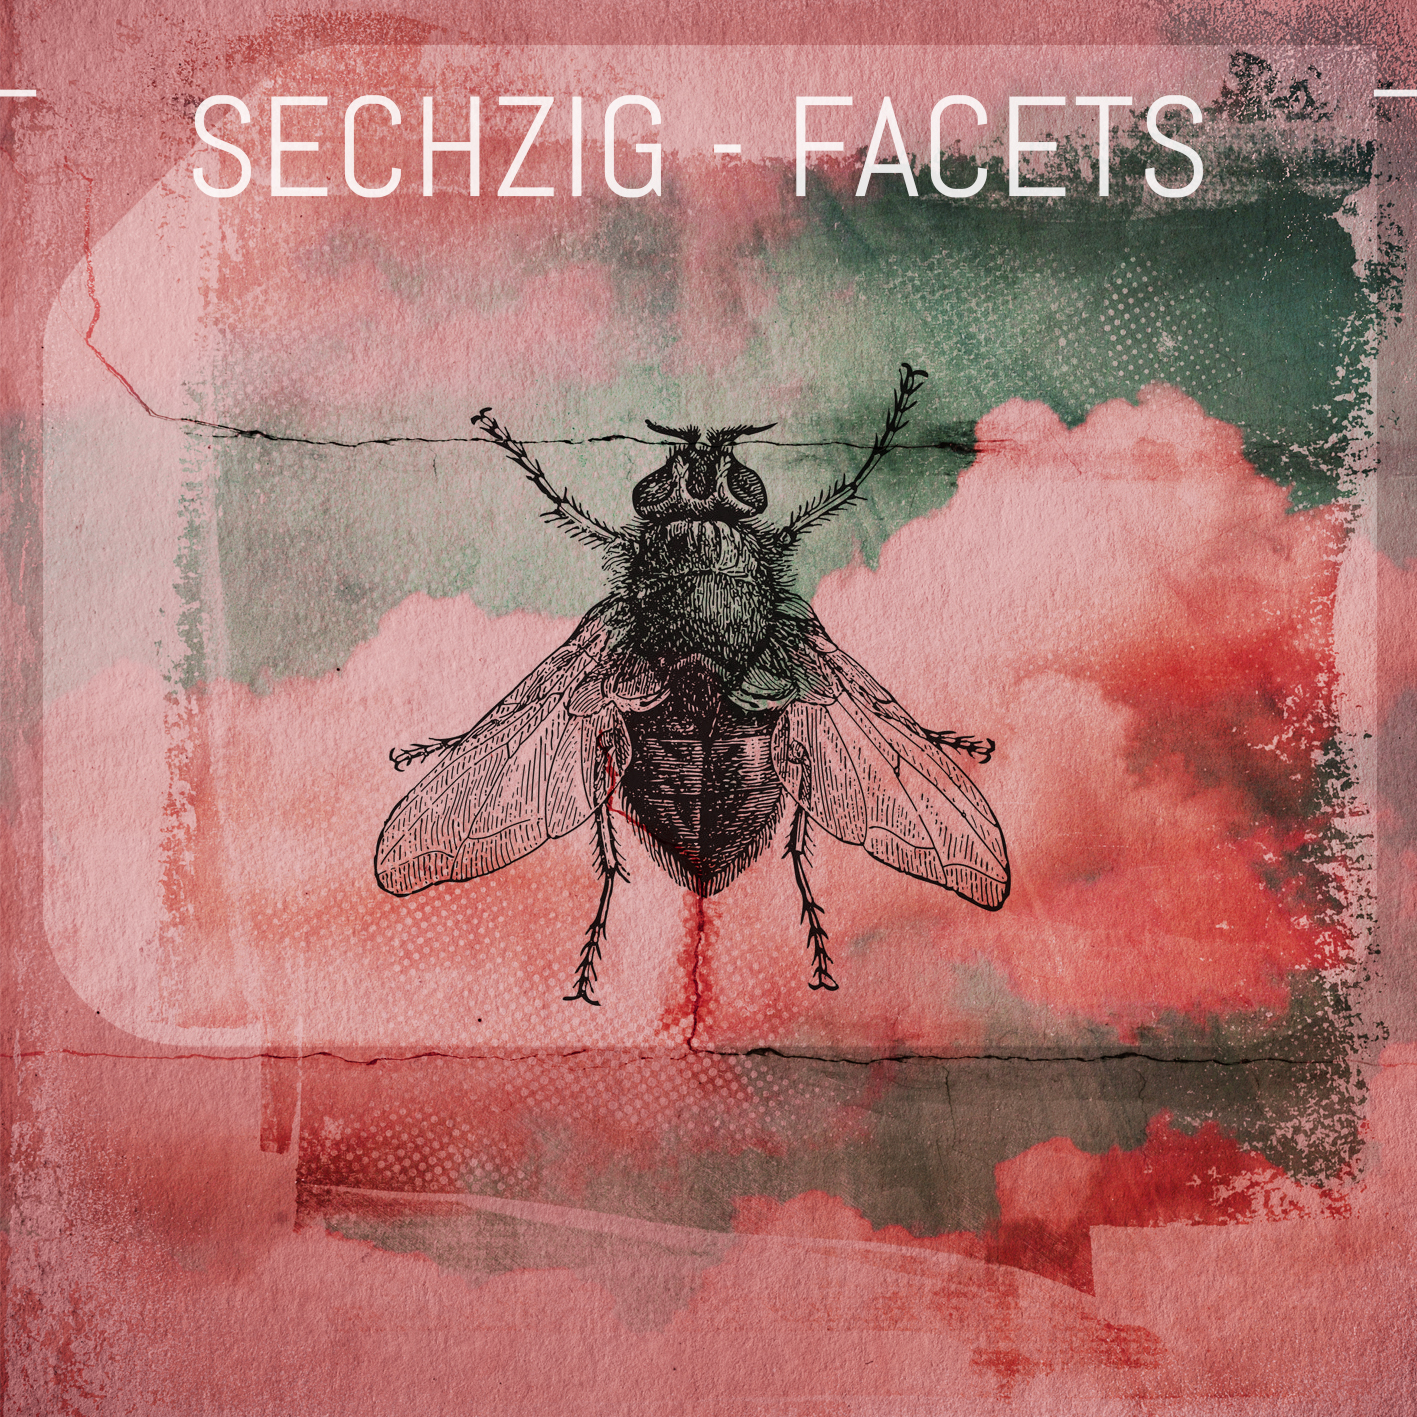 DMD012 - Sechzig - Facets